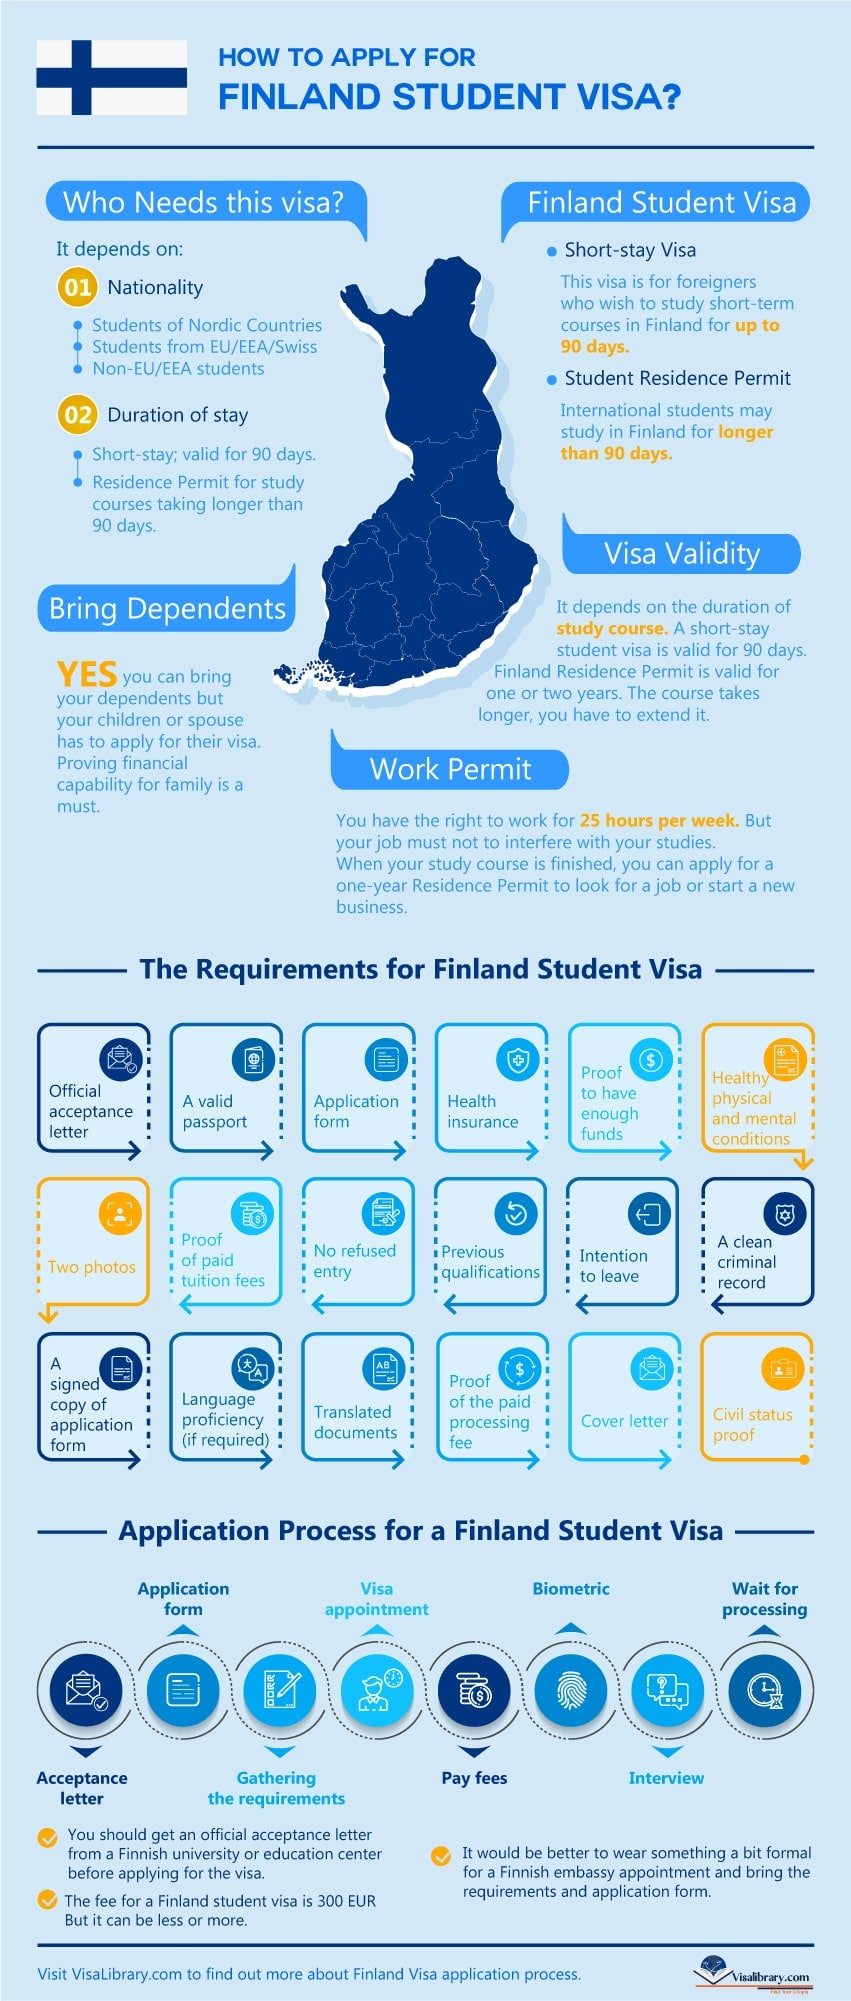 How to apply for Finland Student Visa?